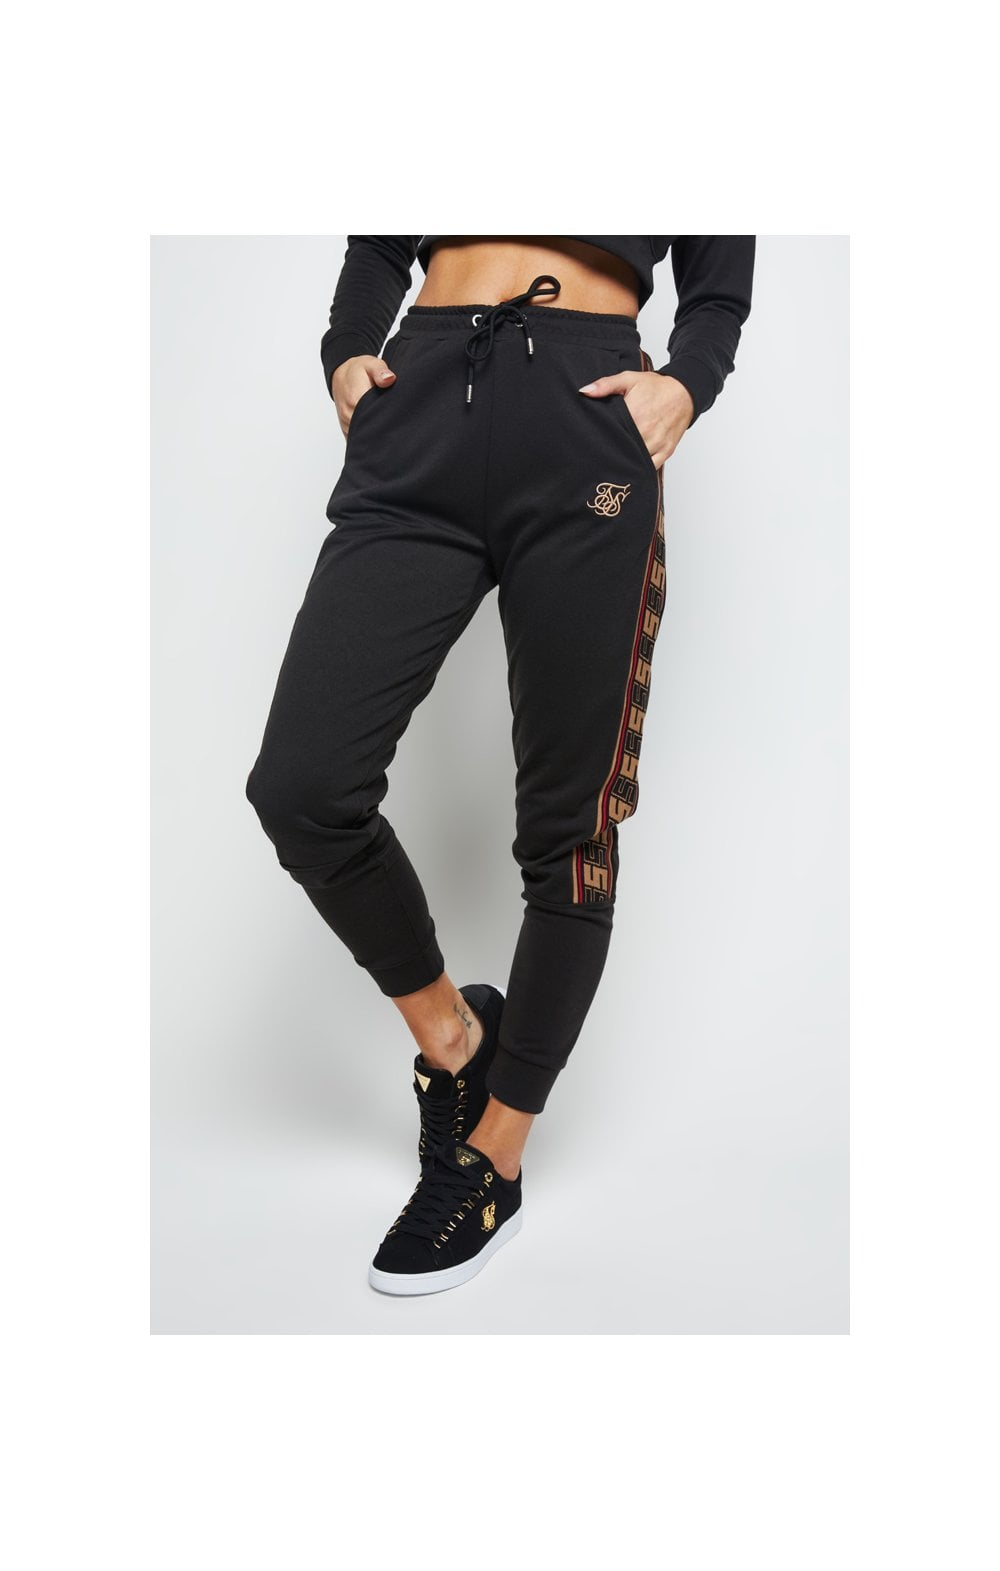 SikSilk Distinction Track Pants - Black (1)